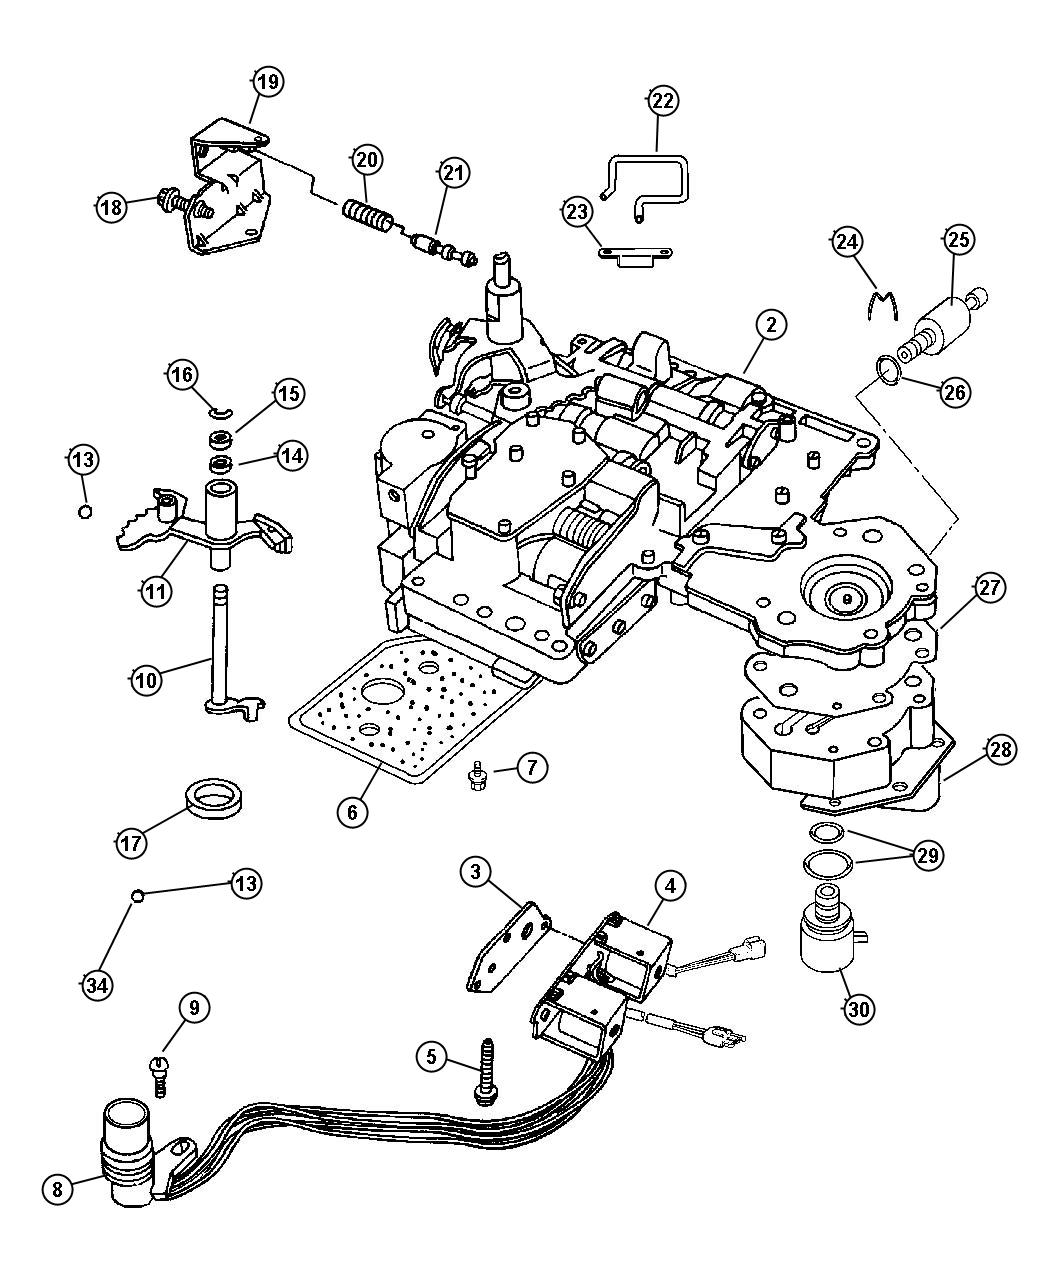 Chevy Fuel Filter Diagram together with T19554049 Pcm anything fuel pump relay getting hot furthermore 6nwo1 Buick Lesabre Limited 1997 Buick Lesabre Limited together with 55914 Vacuum System Idle Going 1500 2000 A 3 also 06 Honda Civic Power Steering Pump Diagram. on 2003 geo prizm